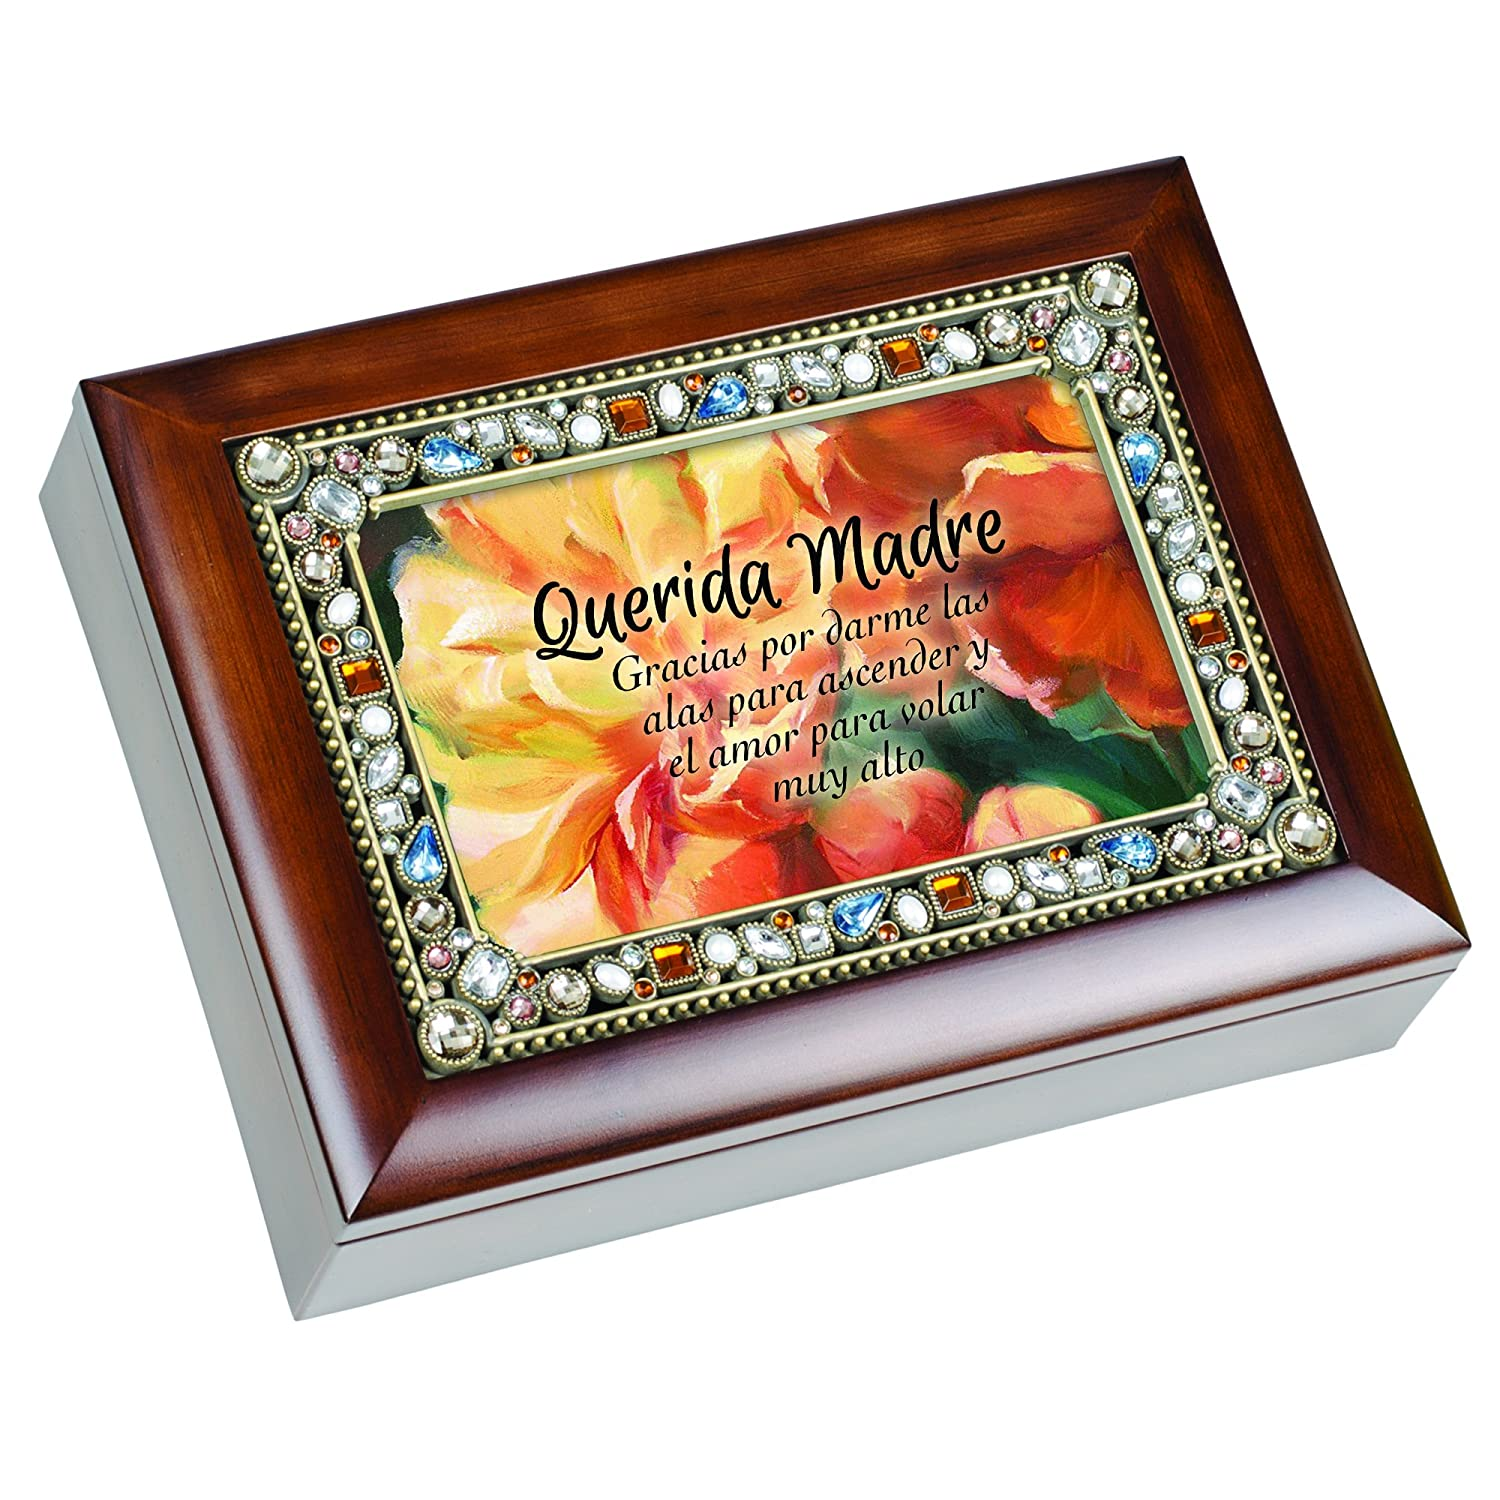 【数量限定】 Querida Madre Dear Mother Jeweled Thou Wood Querida Grain音楽ジュエリーボックス記念品 Art – How Great Thou Art B00VH27468, アバシリシ:896d7622 --- arcego.dominiotemporario.com